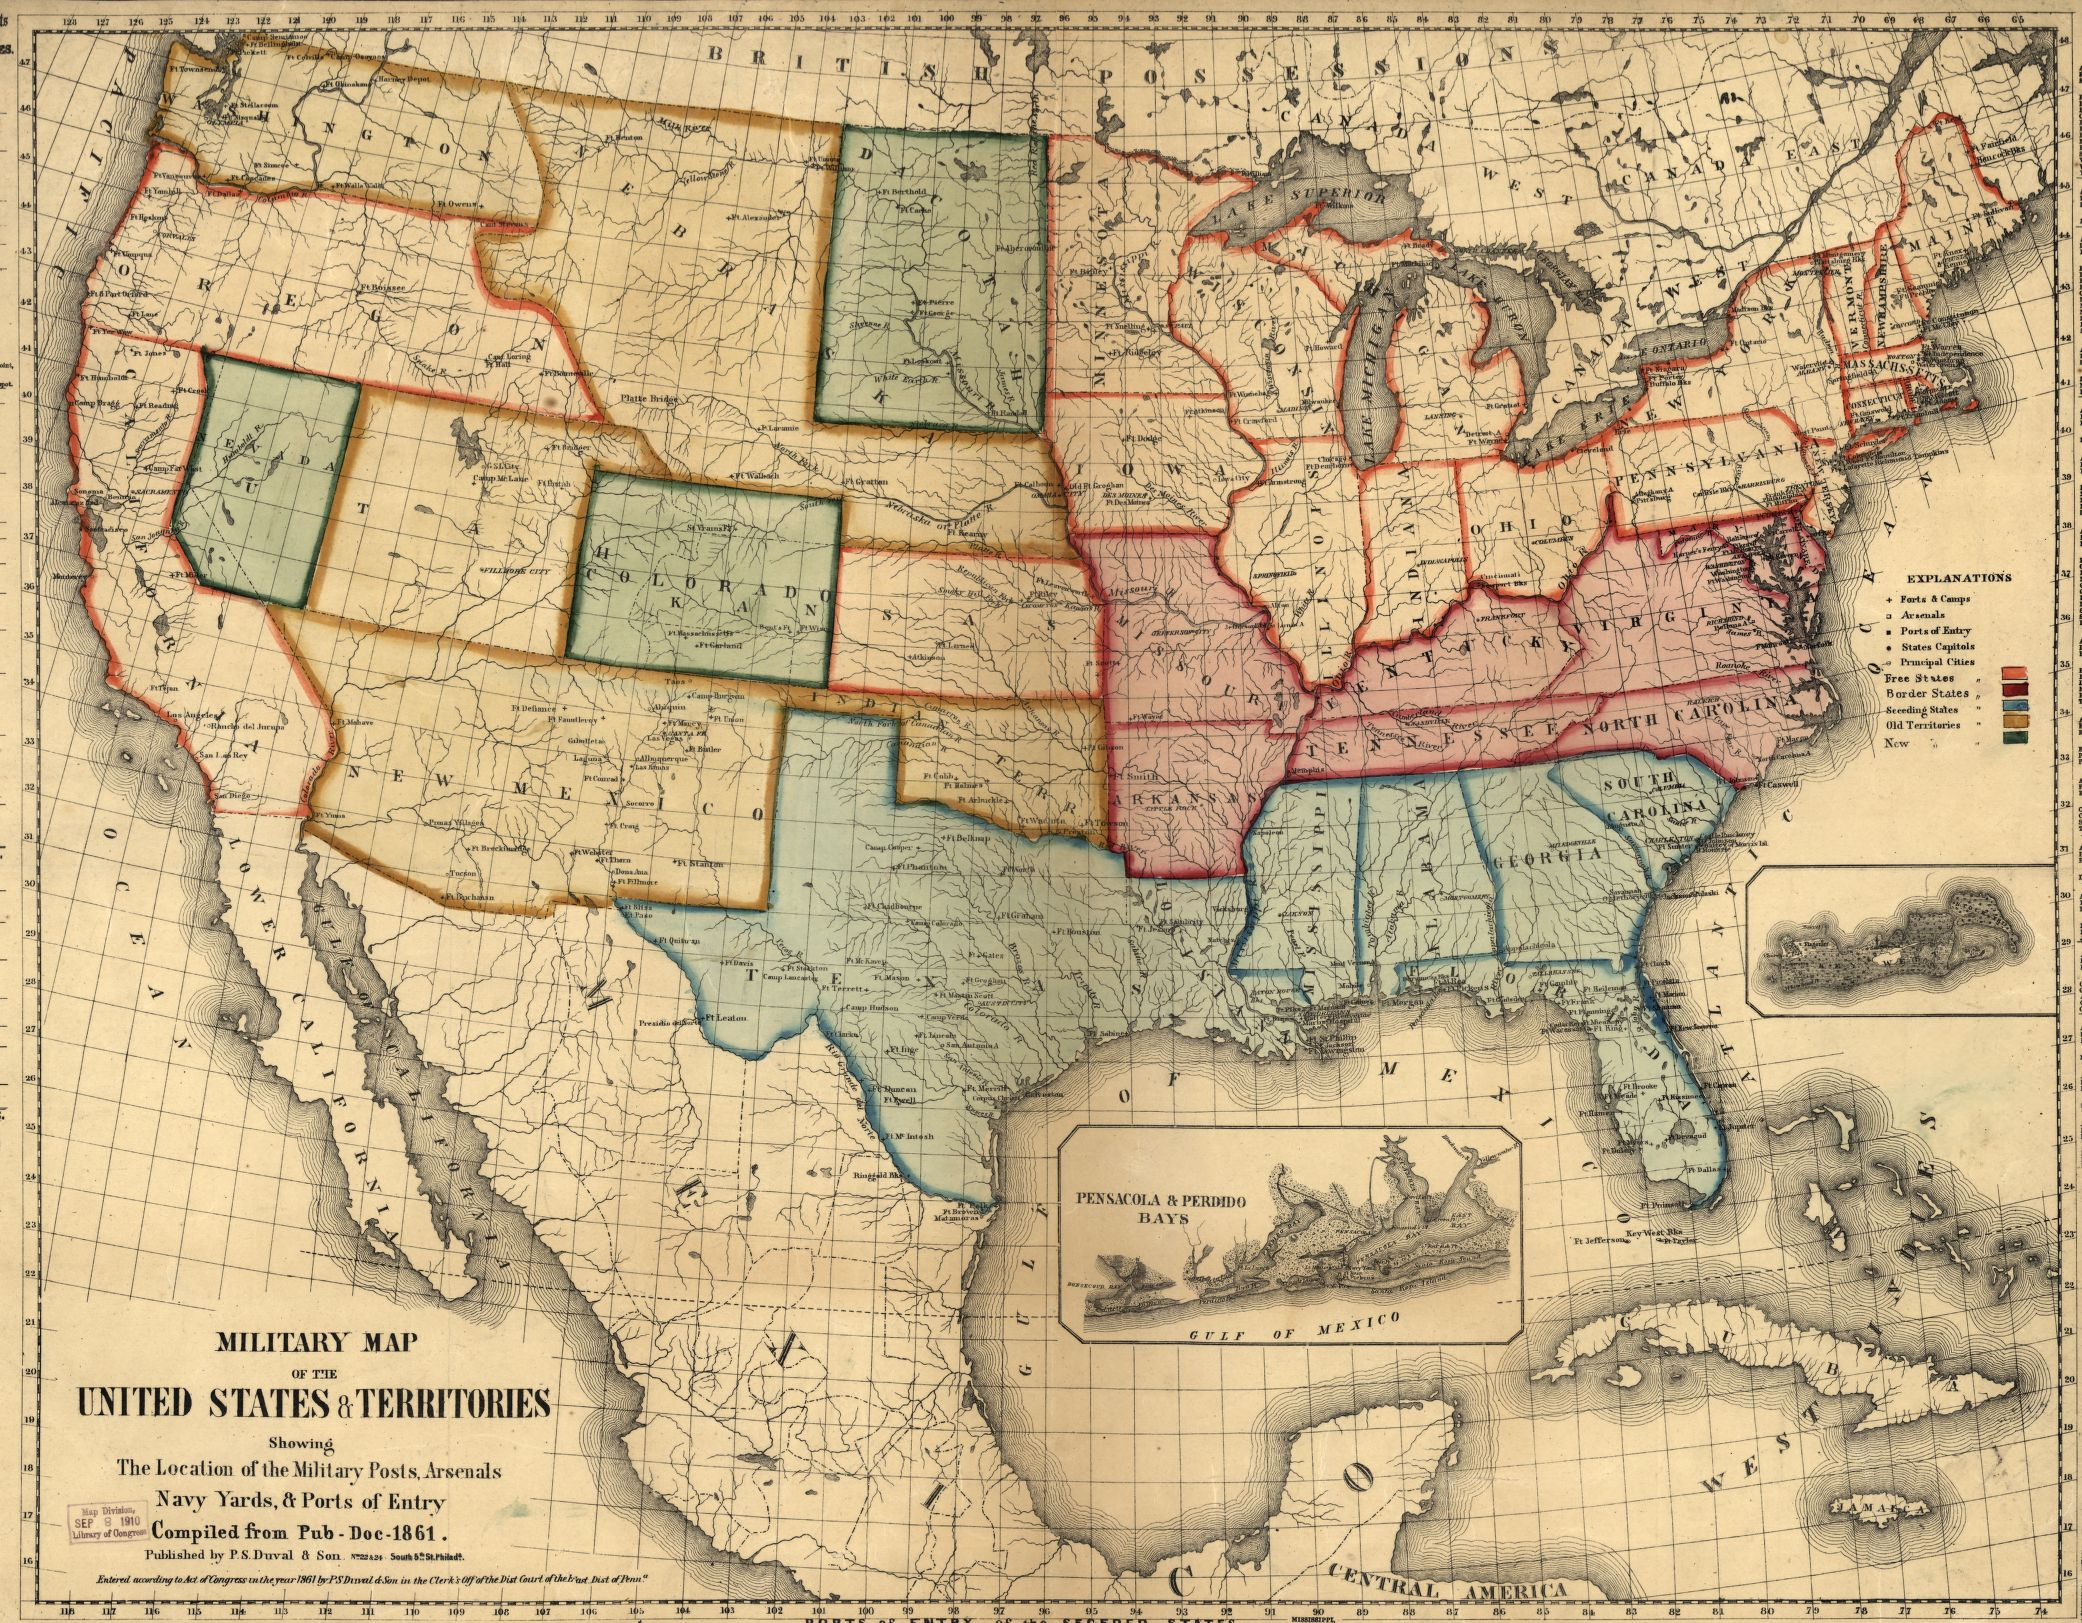 Rethinking The Methods And Geography Of Civil War History